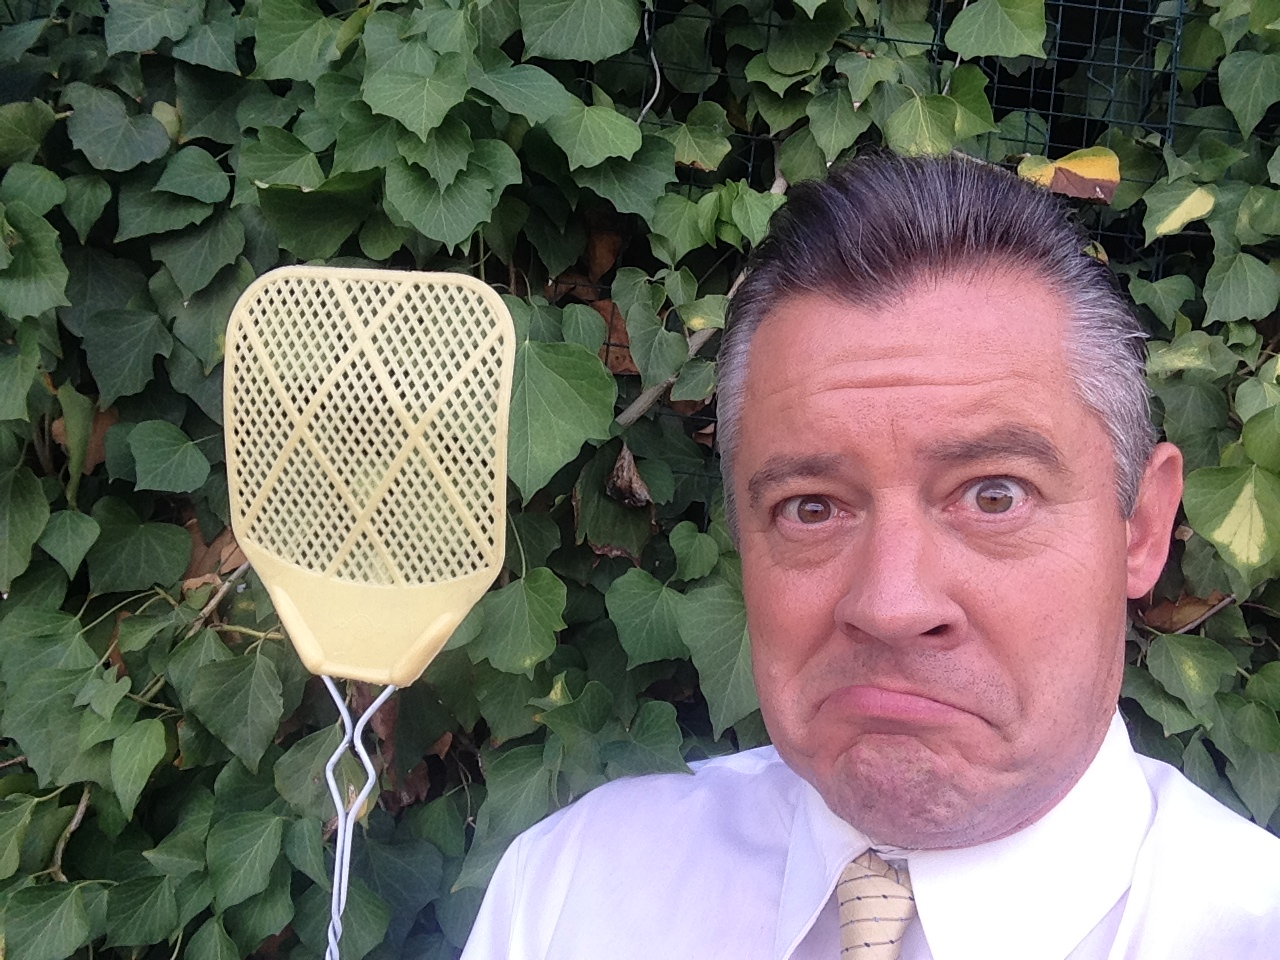 Bettes Fly Swatter 2